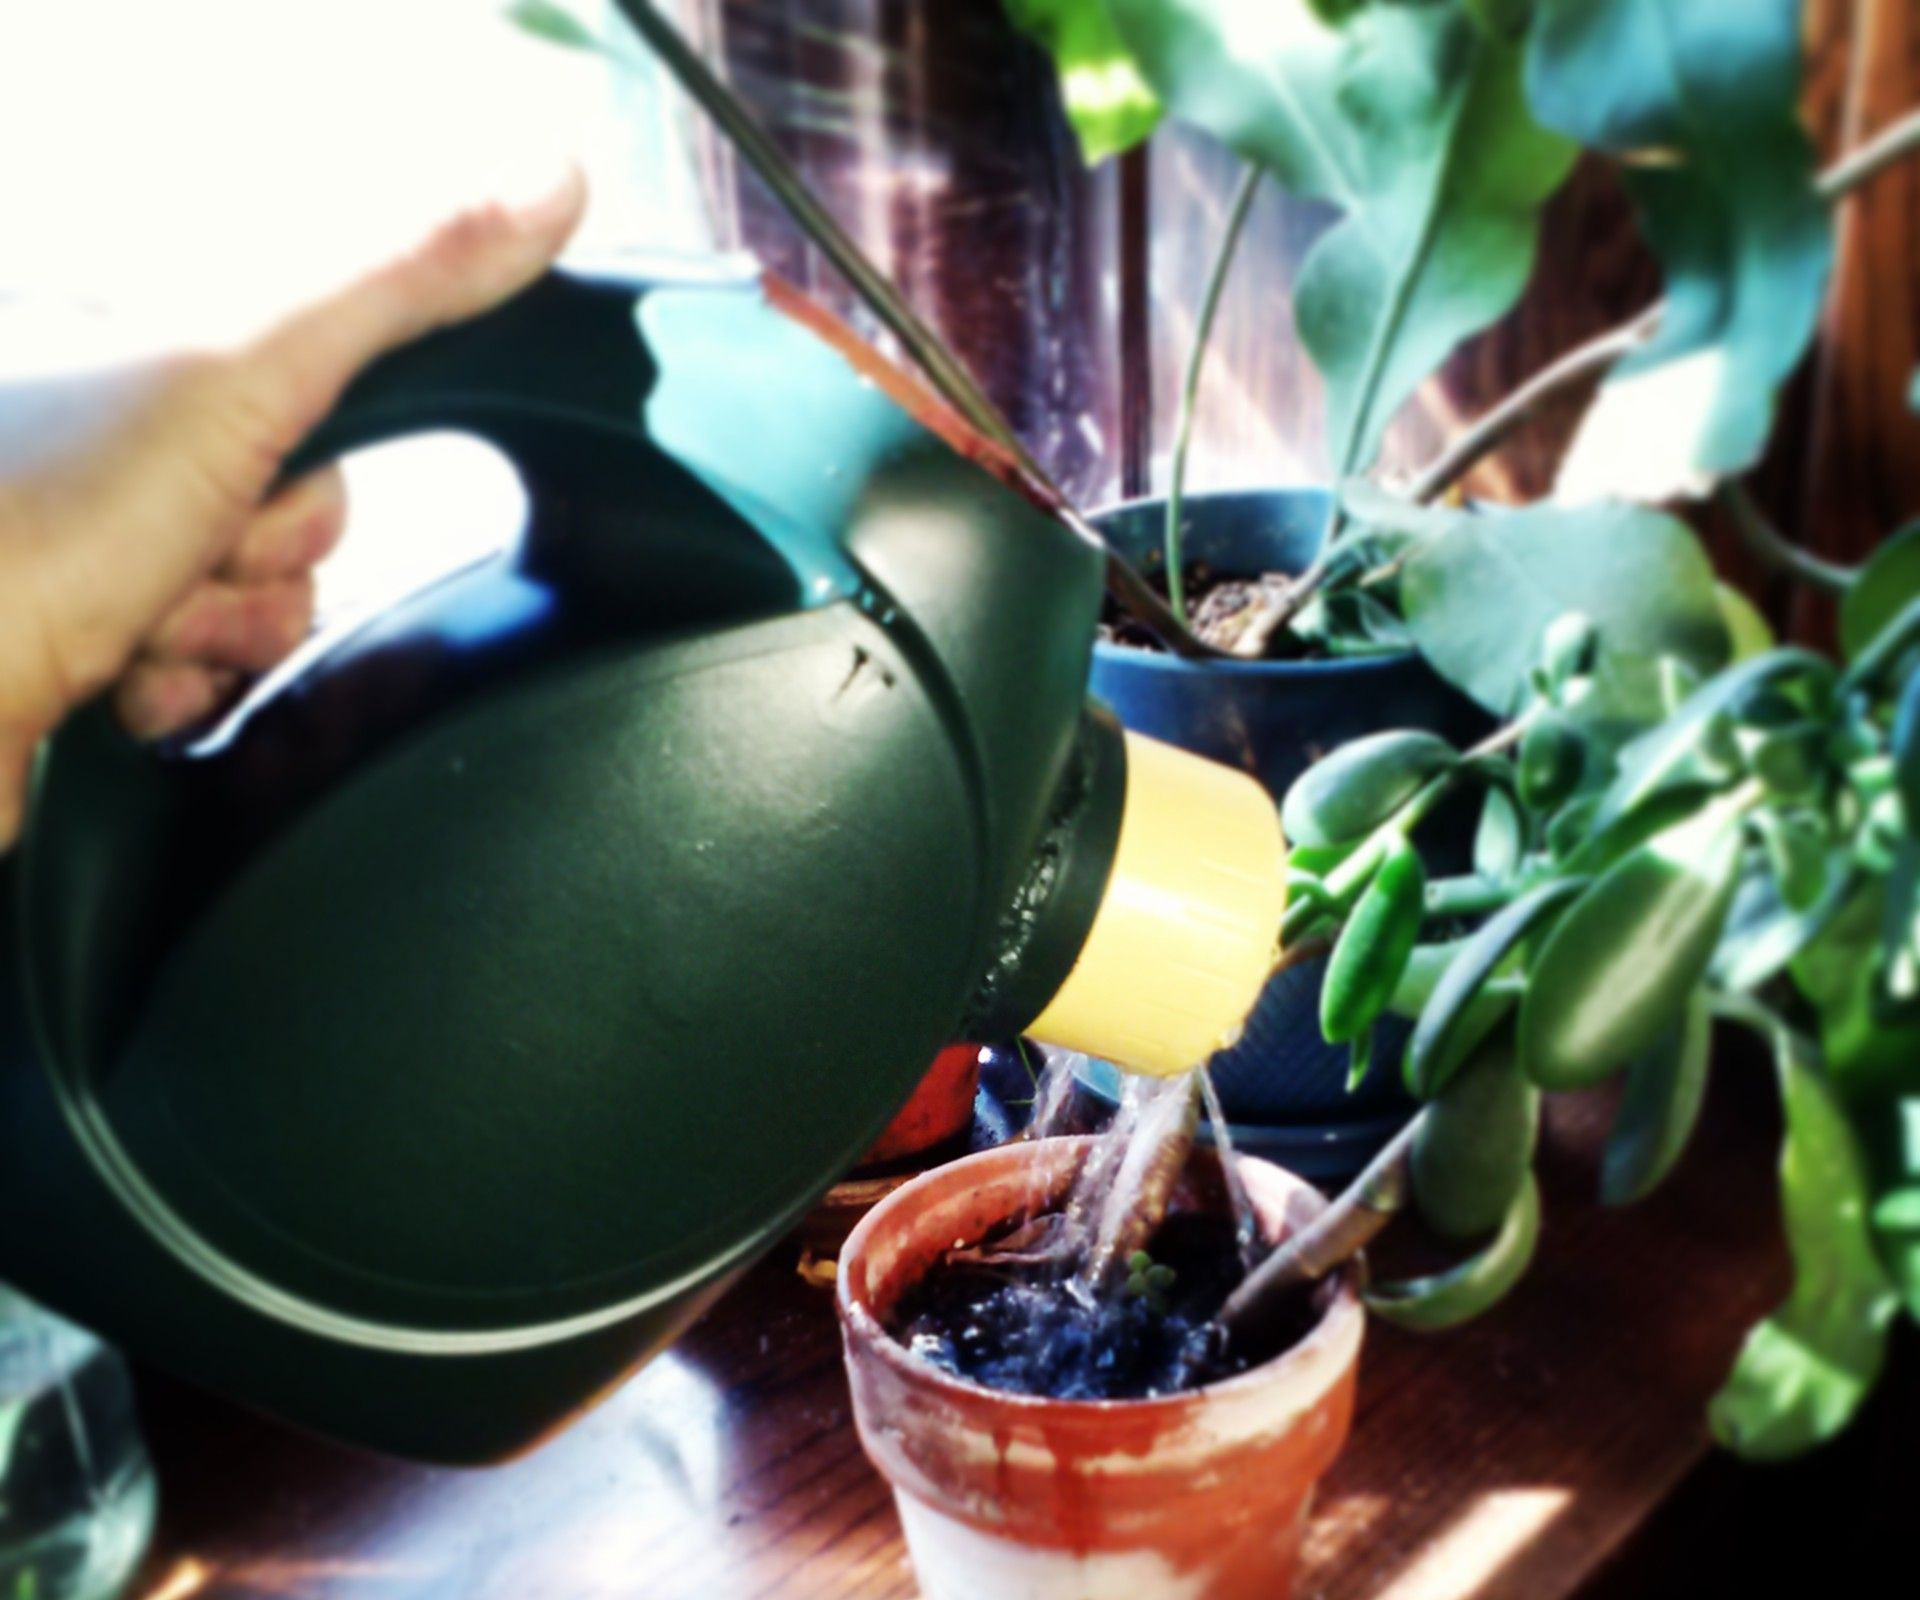 Stylish detergent bottle watering can